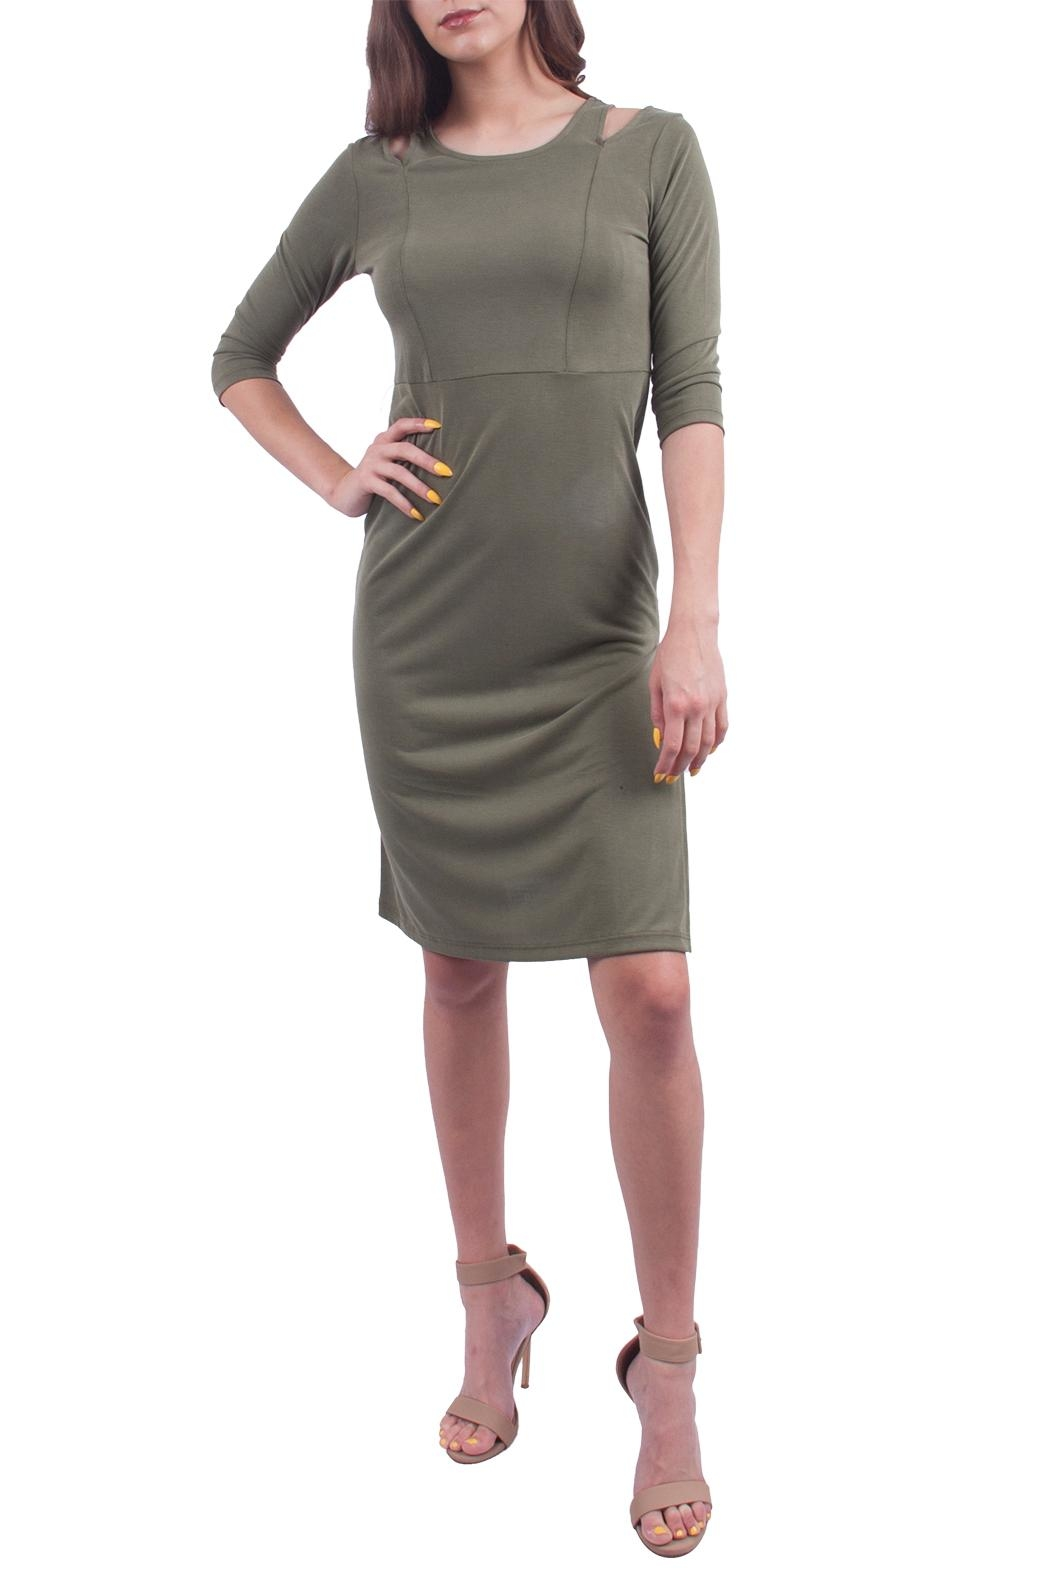 Everly Olive Shoulder Dress - Main Image